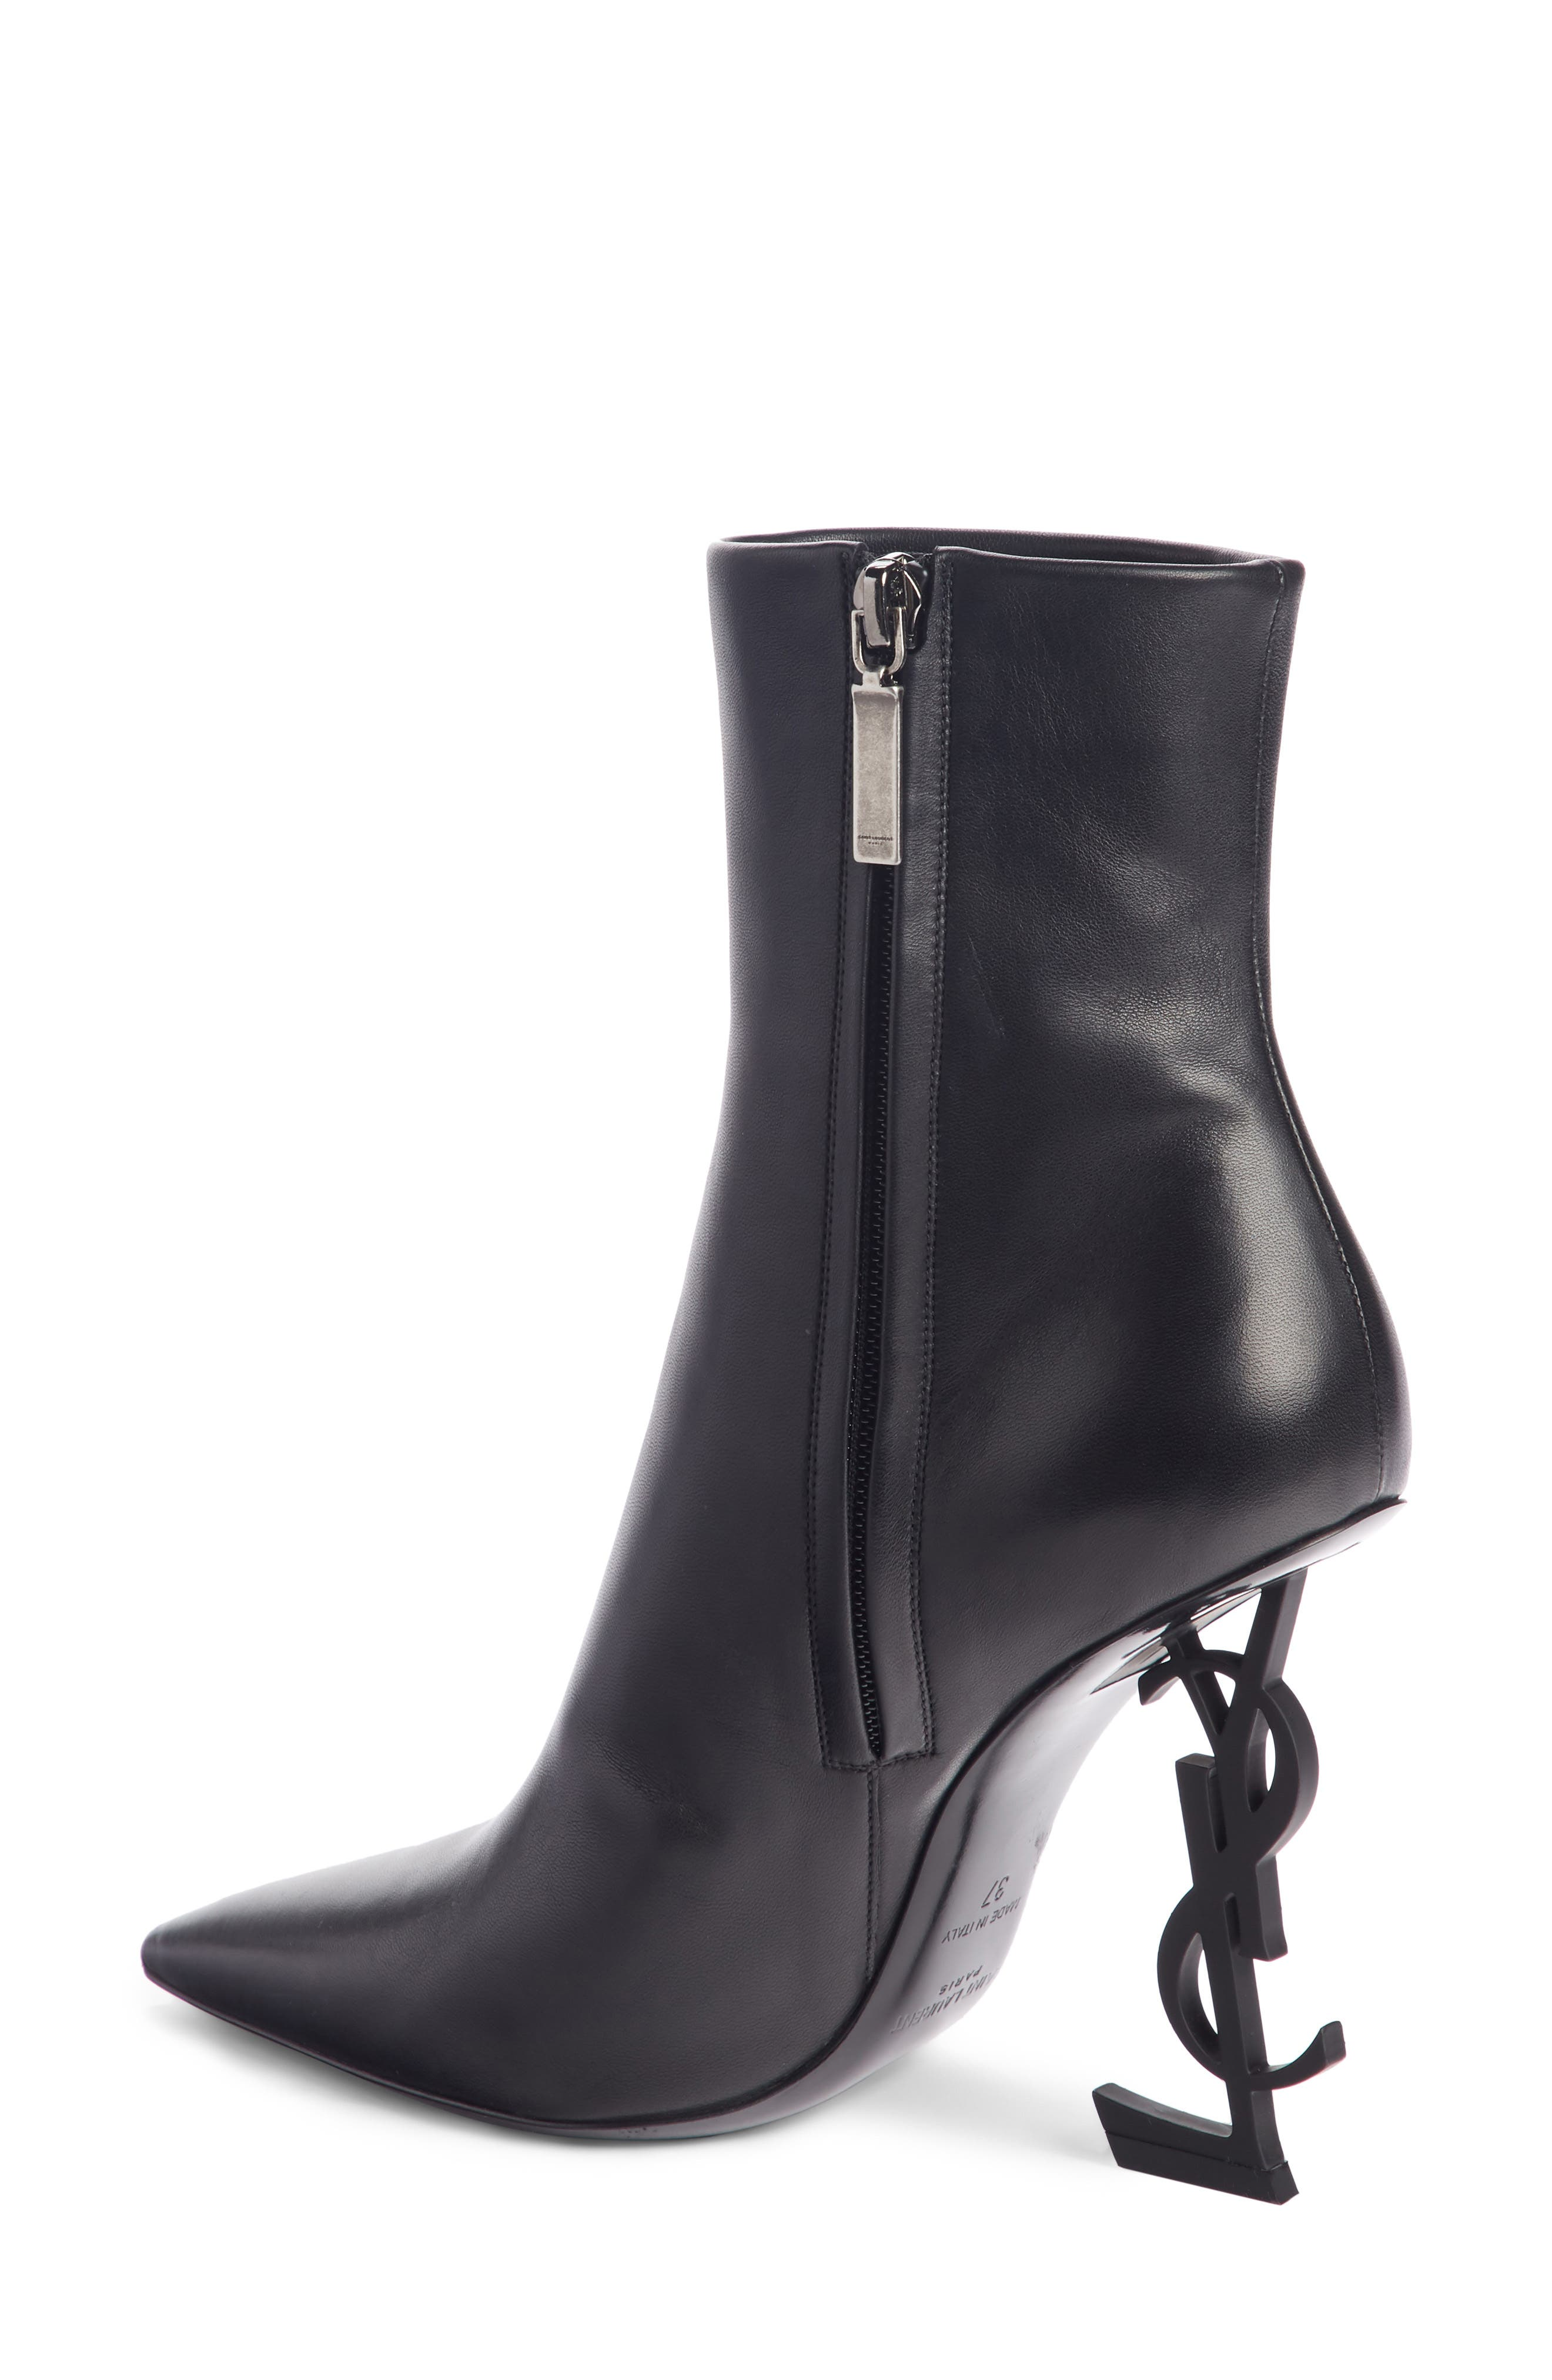 Opyum YSL Bootie,                             Alternate thumbnail 2, color,                             BLACK LEATHER